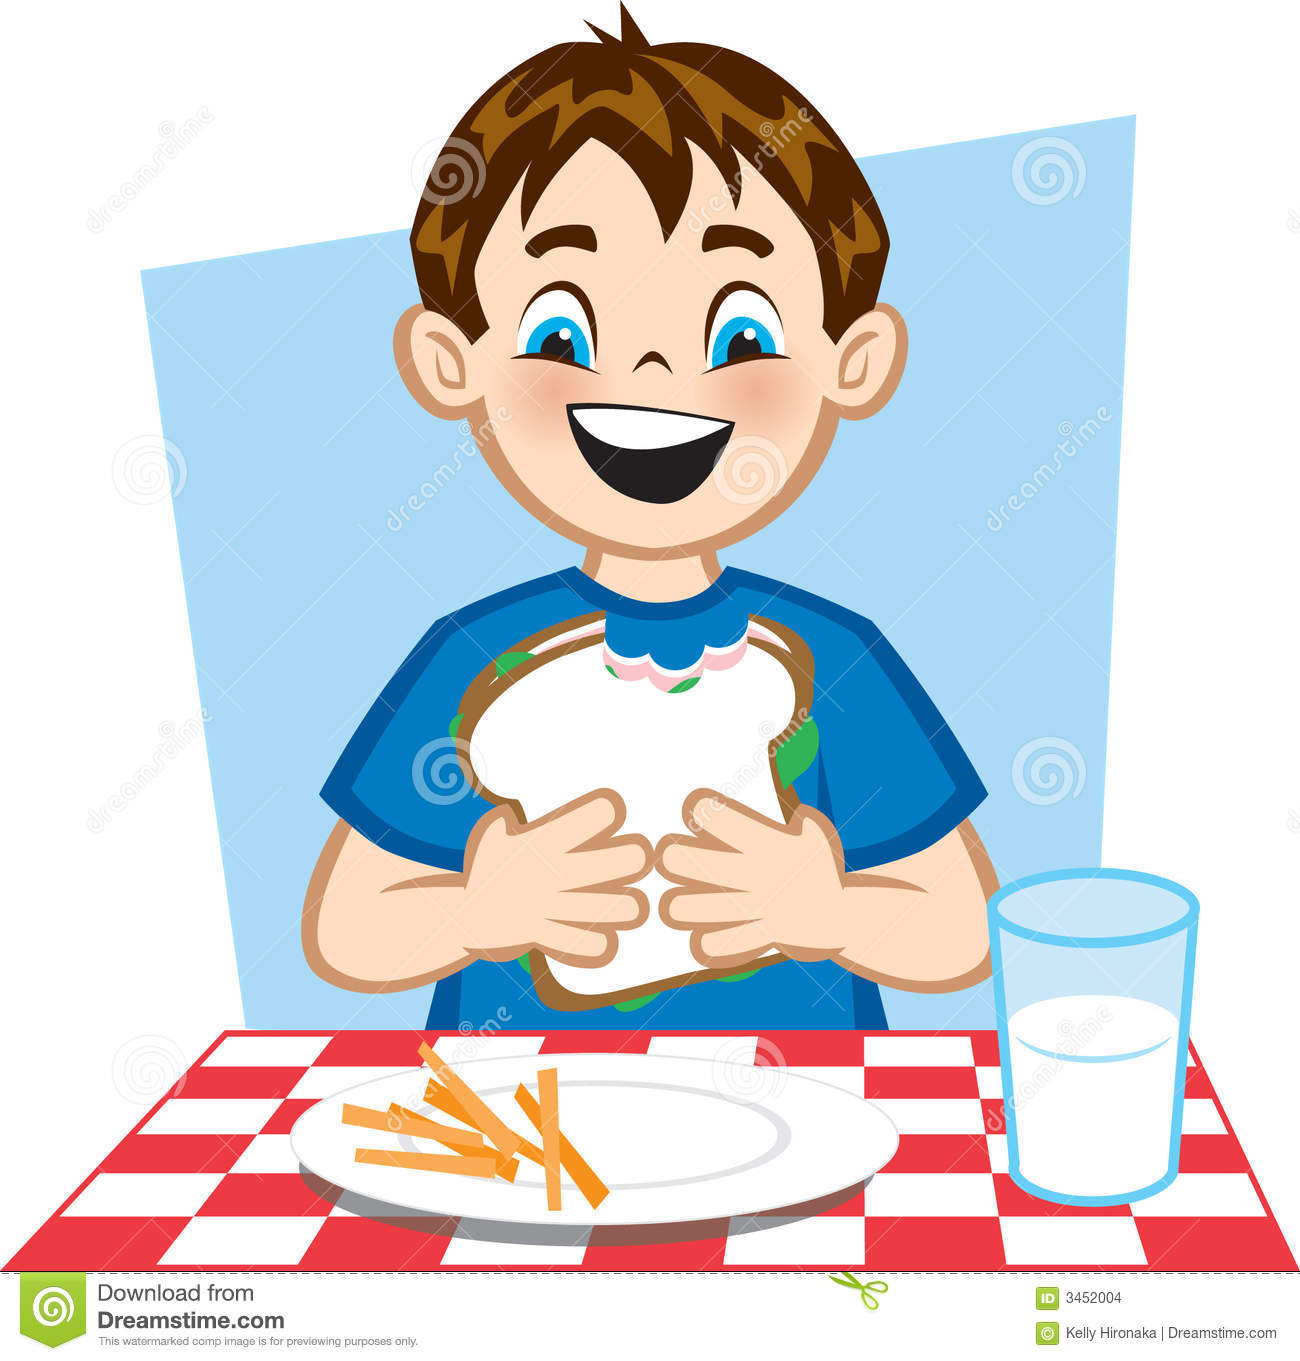 Illustration of a young boy eating a healthy lunch.